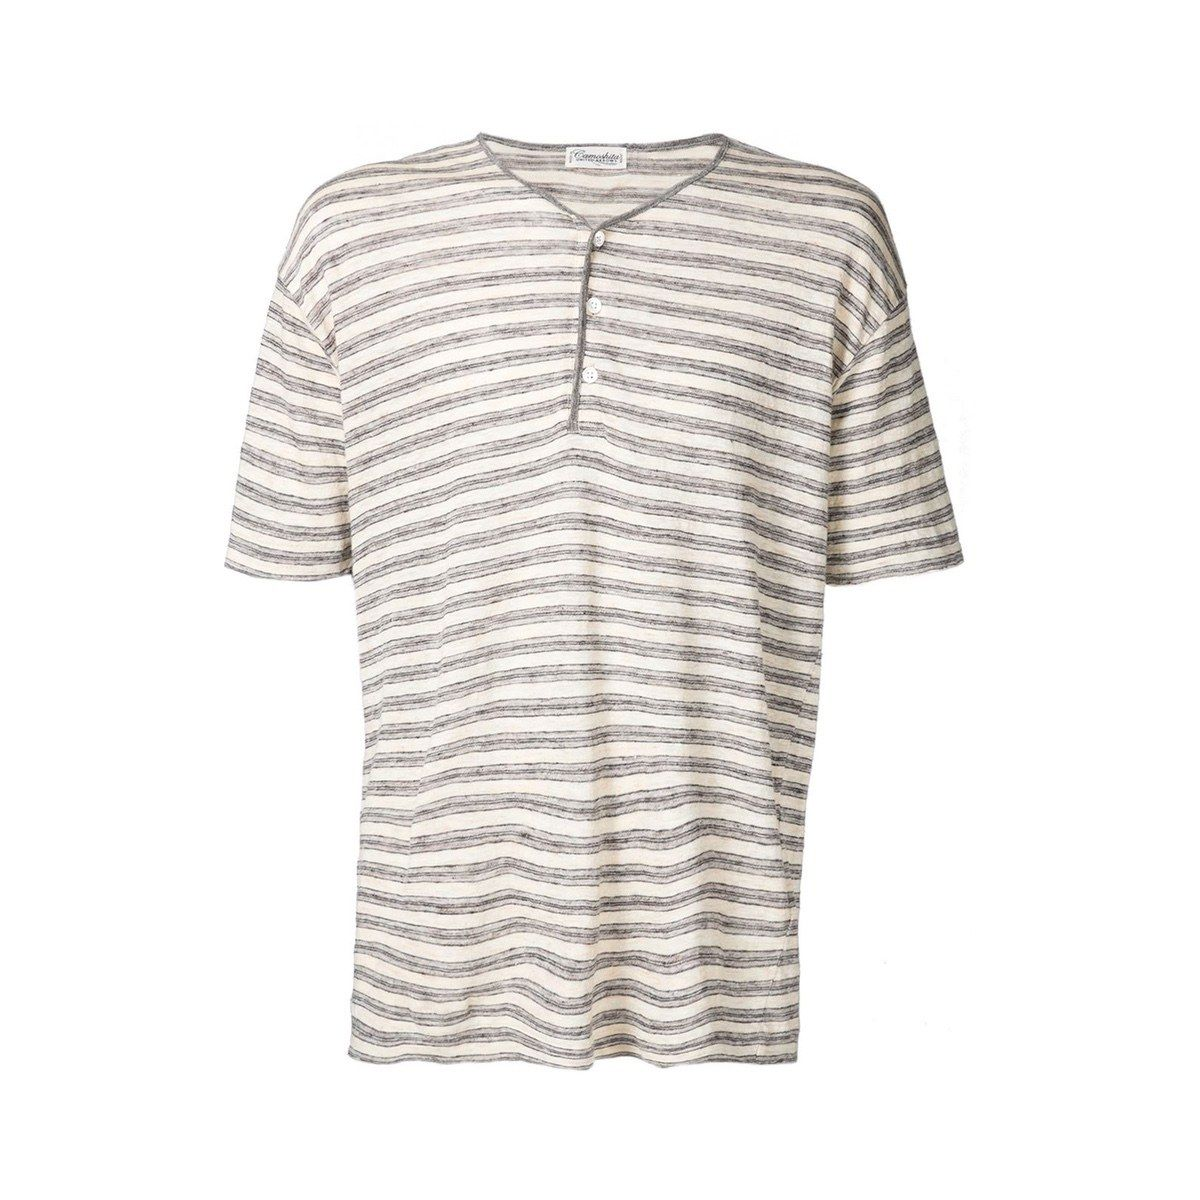 The Spring Shirt That'll Make You Look Swole Photos | GQ